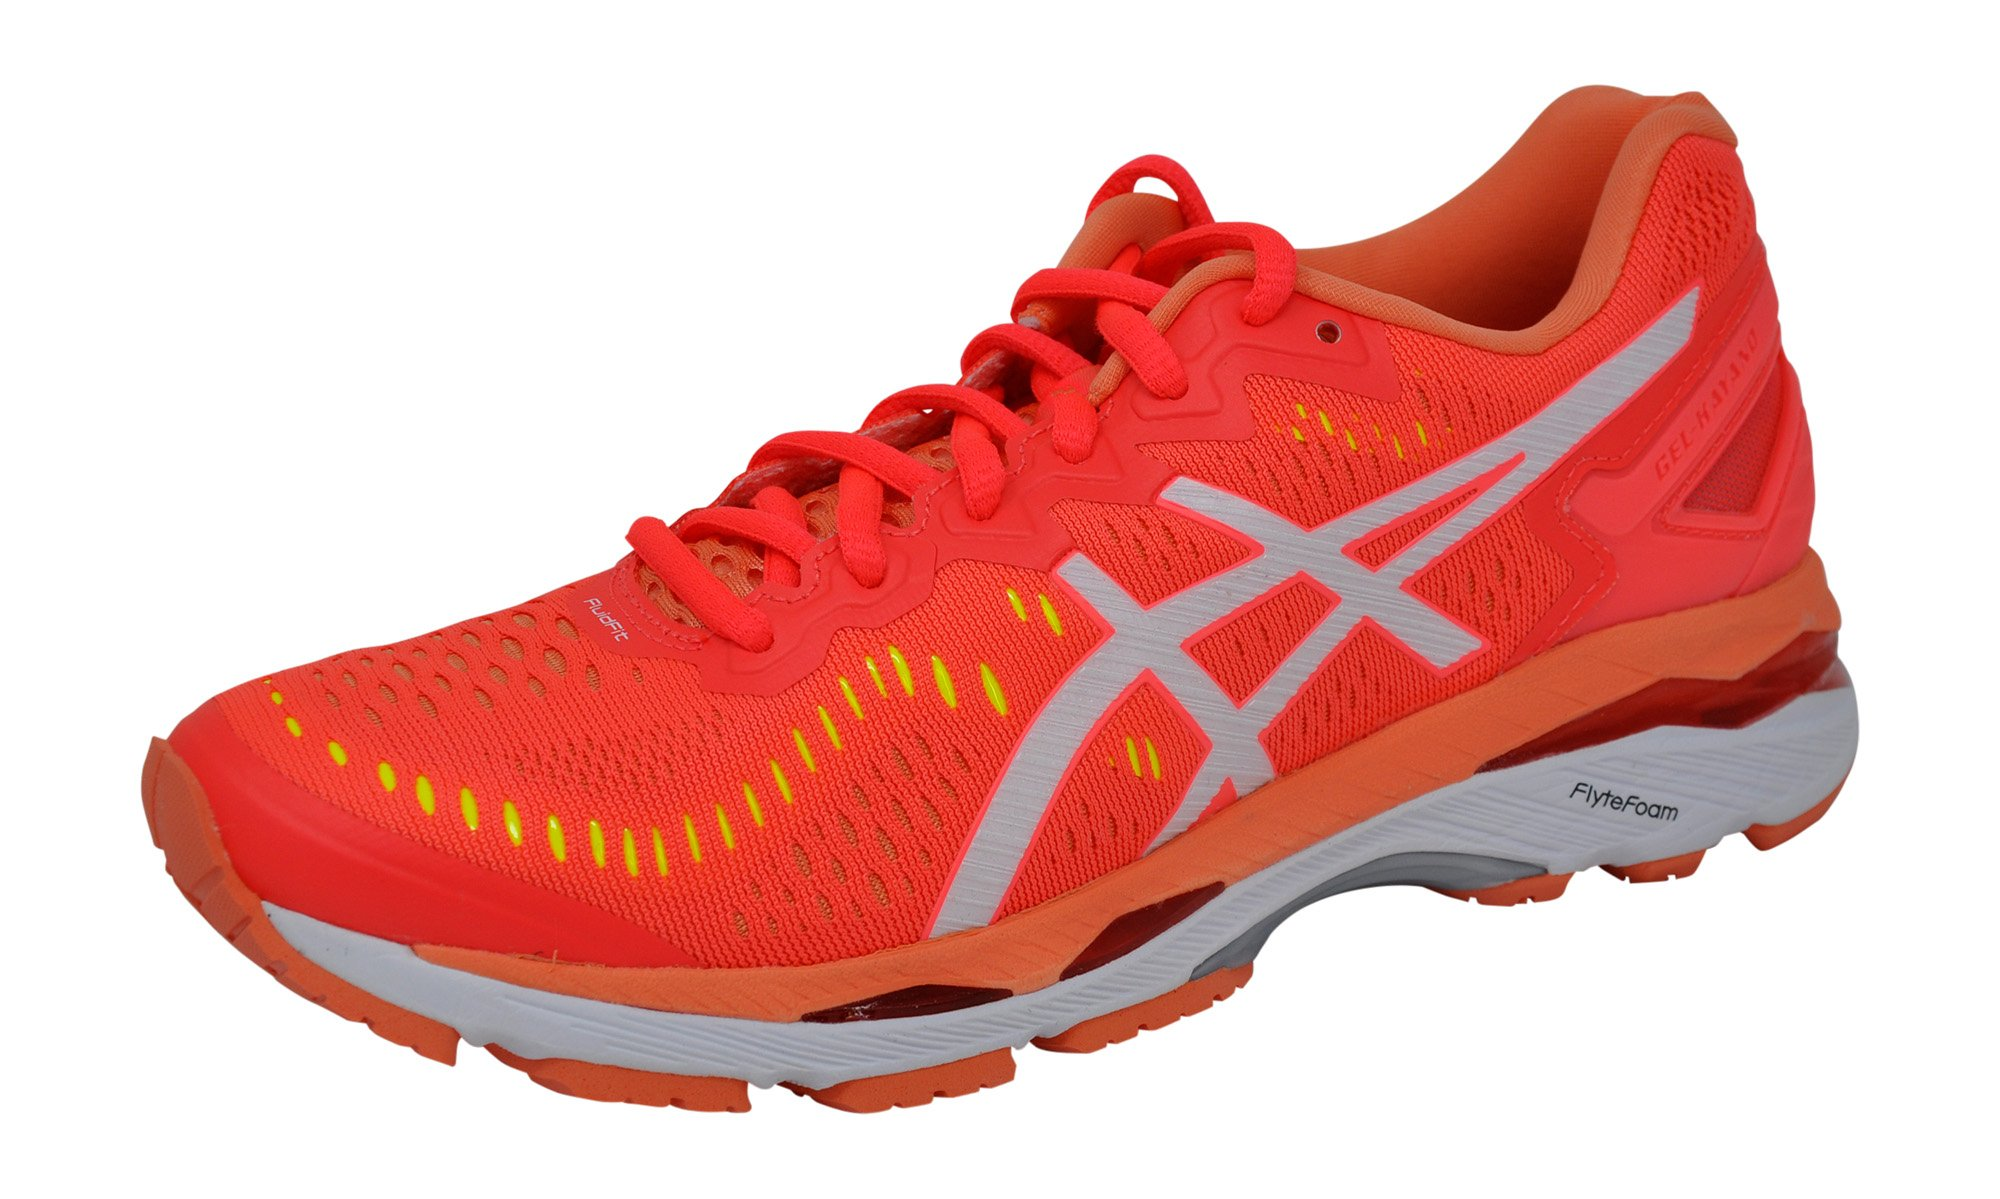 ASICS Womens Gel-Kayano 23 Running Shoe, Pink/White/Coral, 10 B(M) US